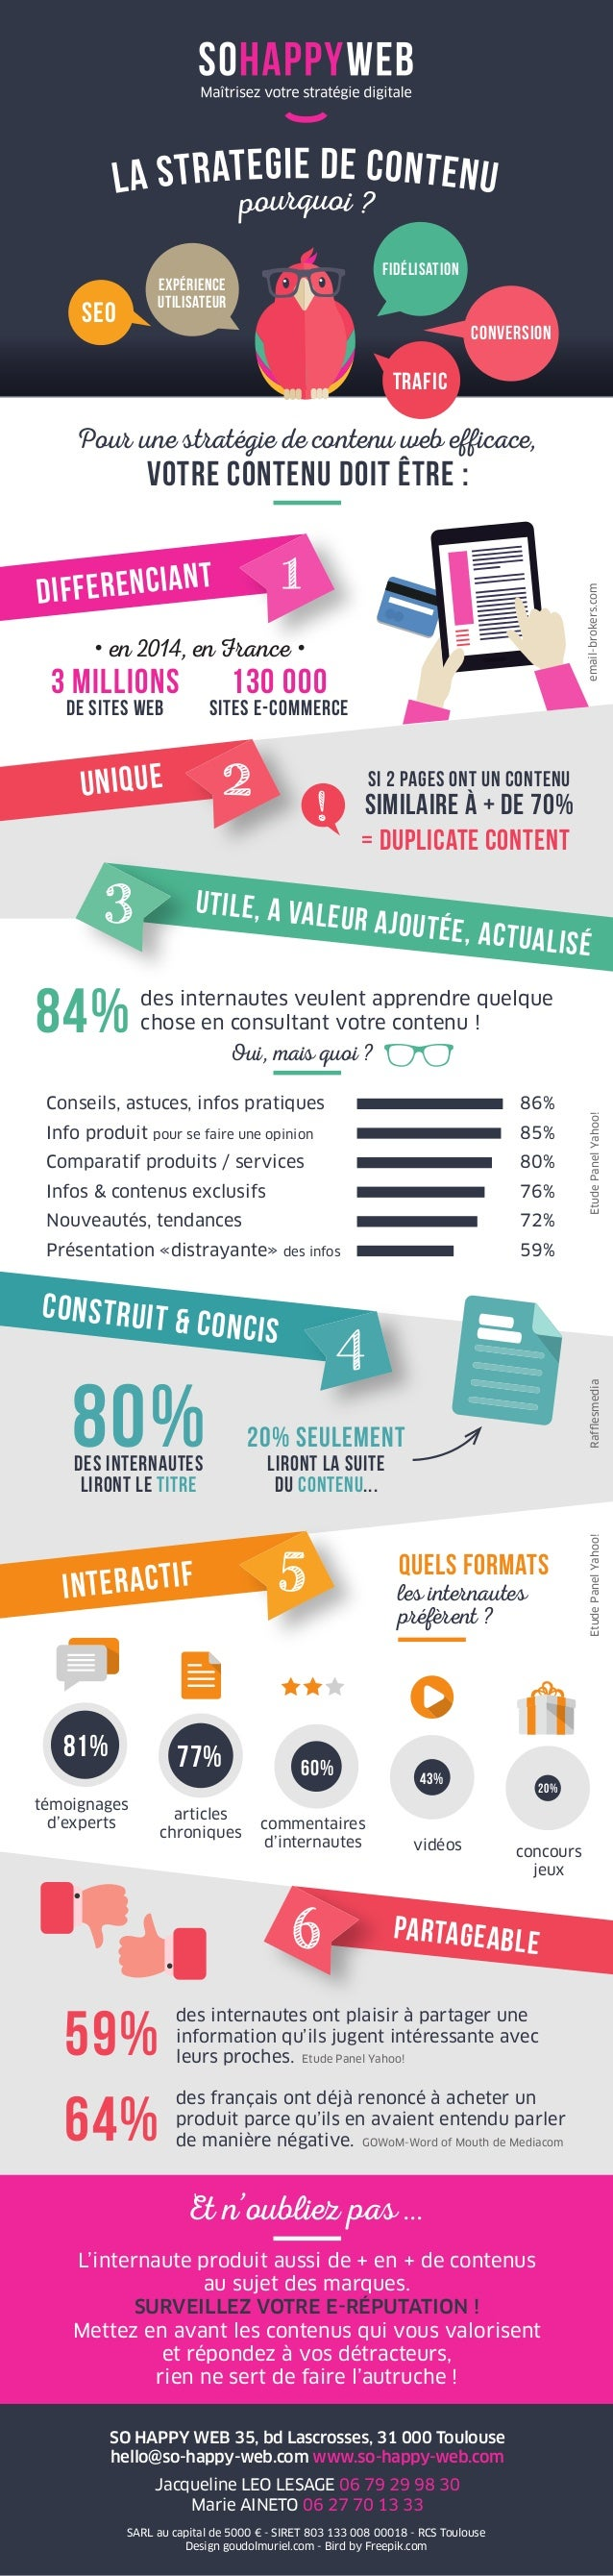 infographie - strat u00e9gie de contenu web - so happy web